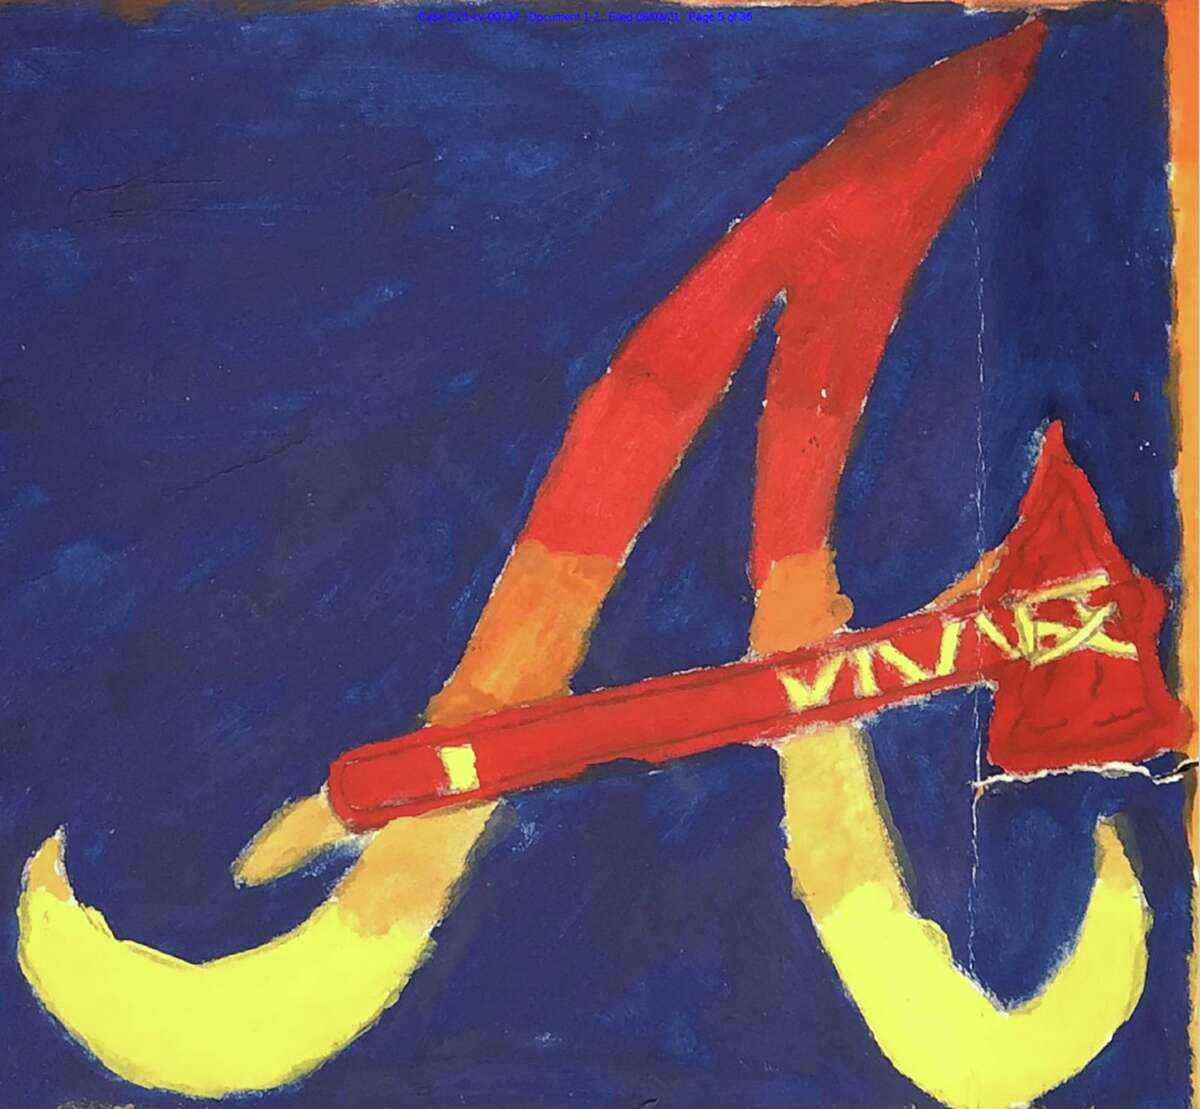 """Jose Rodriguez, a member of the San Antonio Police Department's Rapid Response Team, alleges in a lawsuit that as part of a high school art class project in 2002, he added a tomahawk to the crossbar of the Atlanta Braves' stylized script """"A"""" and submitted it to the team. The team declined the offer. Braves players worn an alternate cap featuring the tomahawk crossbar from 2007 to 2017, the website SportsLogos.net shows. Rodriguez is now suing the Braves and Major League Baseball for copyright infringement."""